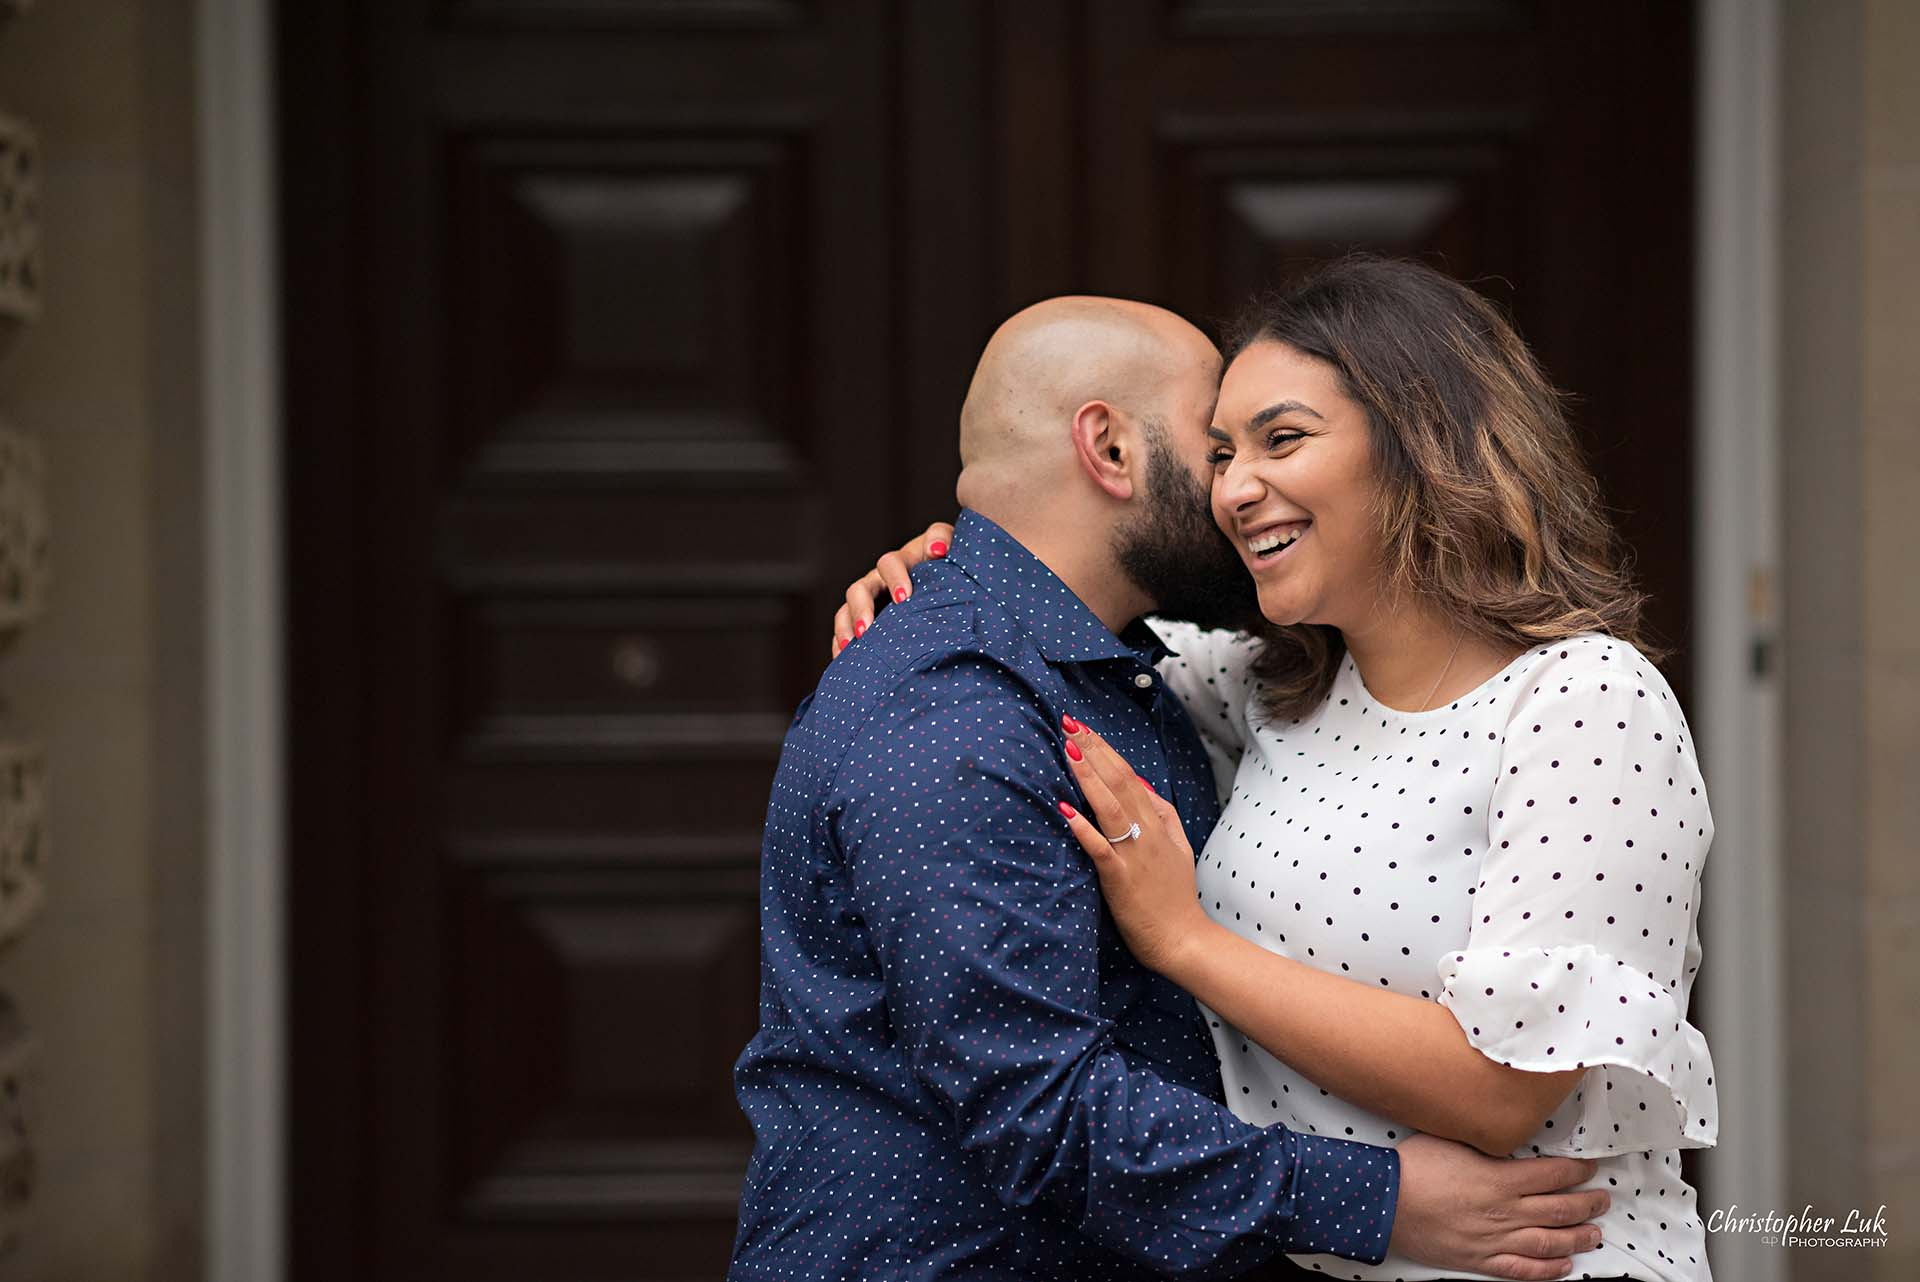 Christopher Luk Toronto Wedding Photographer - Toronto Osgoode Hall Surprise Proposal Engaged Engagement Will You Marry Me She Said Yes Natural Candid Photojournalistic - Fiancé Fiancée Bride Groom Hug Laugh